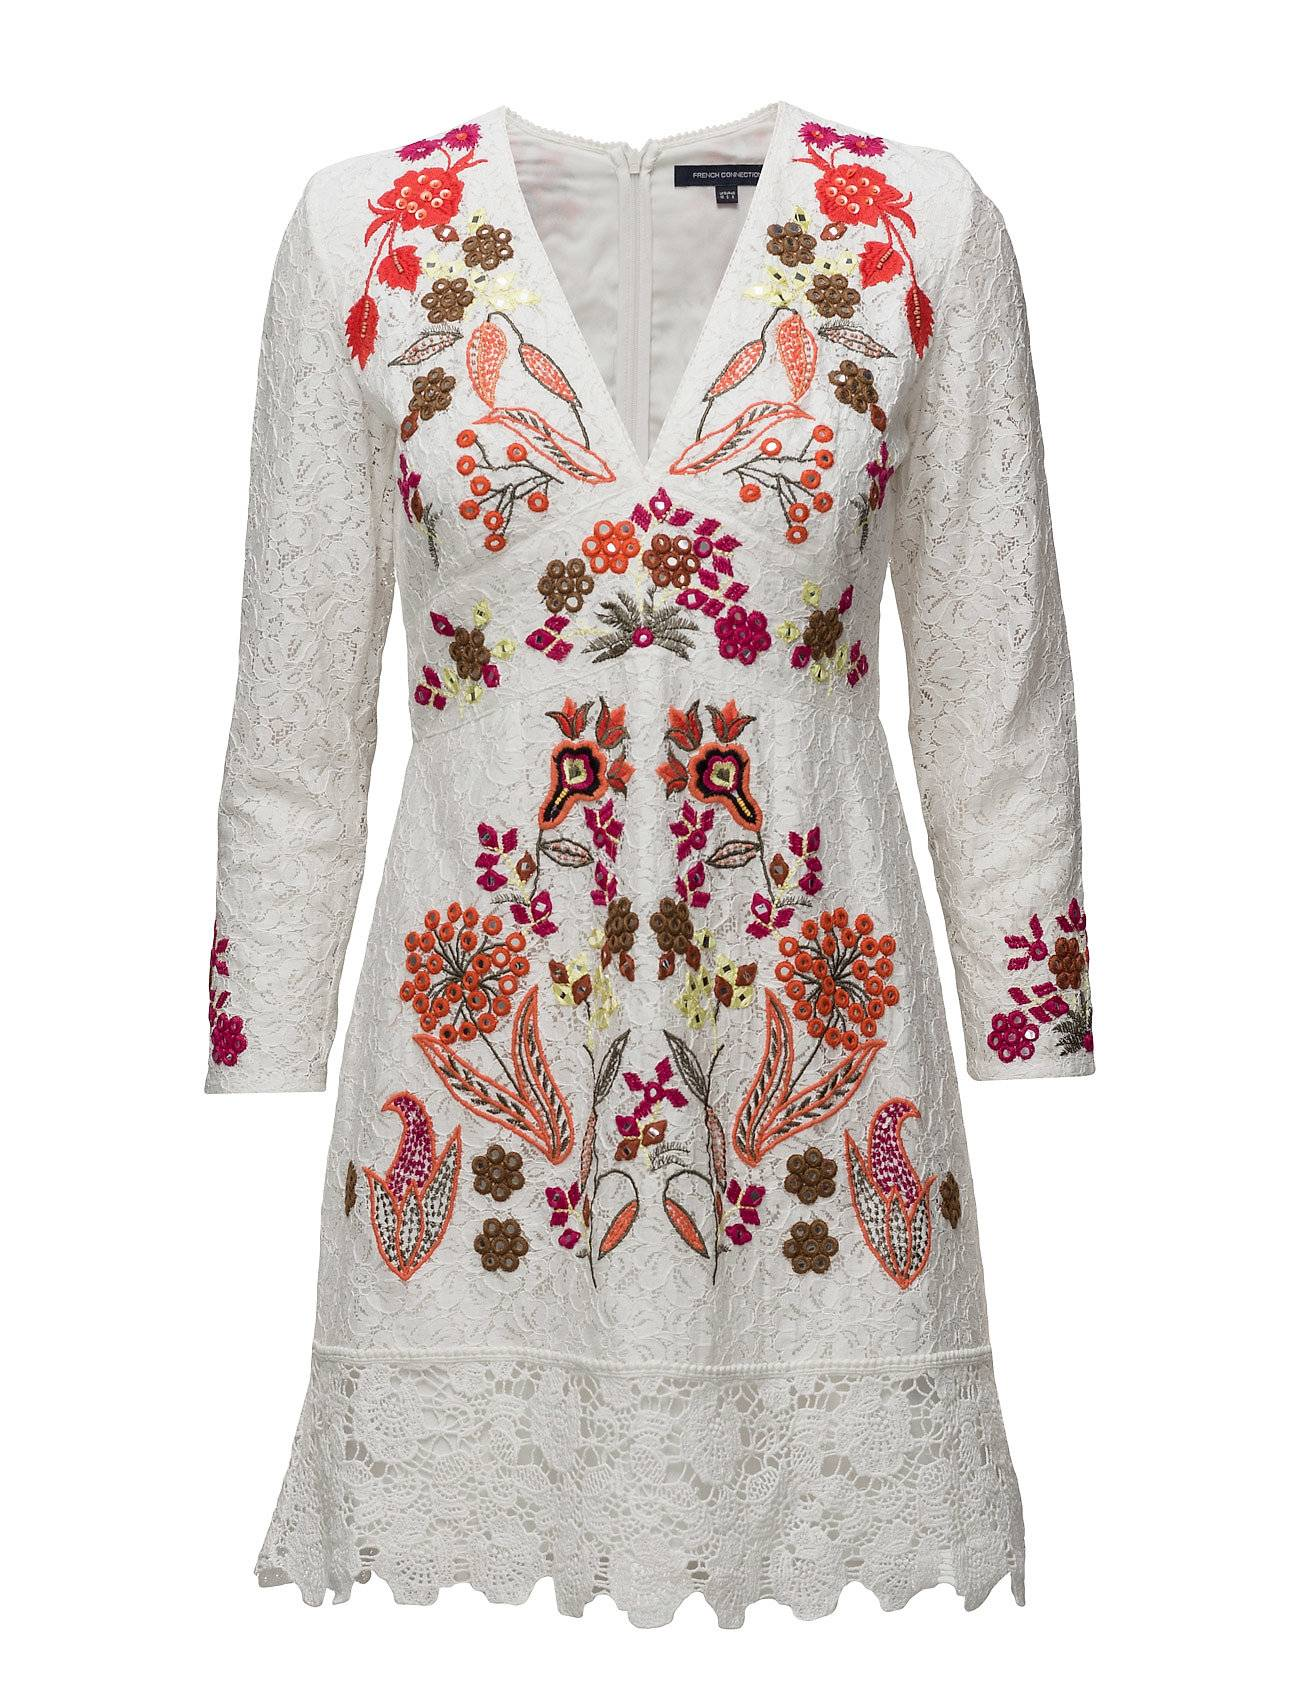 French Connection Legere Lace Floral Embroidered Dress